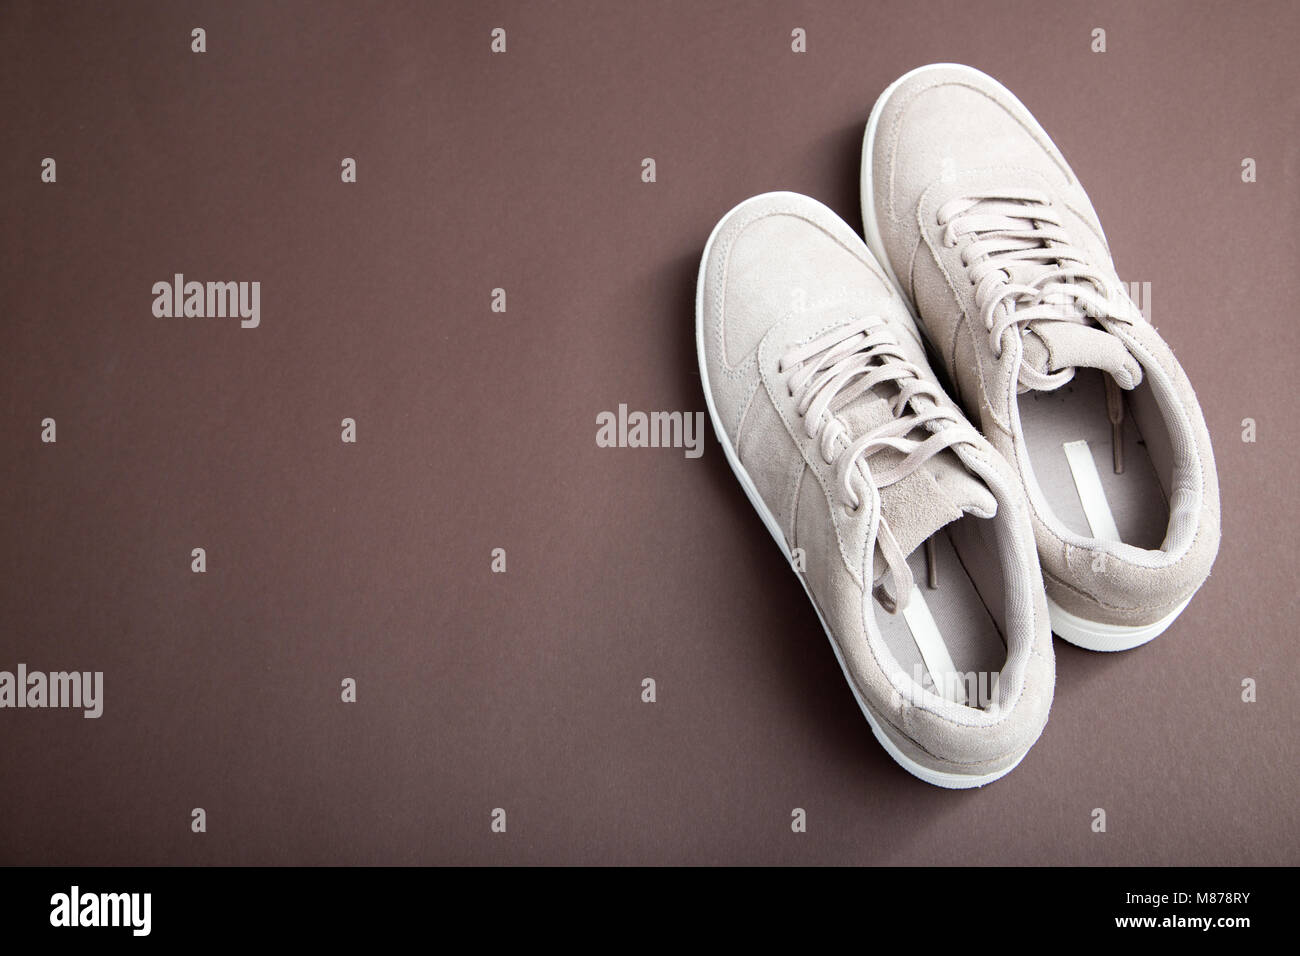 Pastel beige sneakers on a brown background. Flat lay, minimal background. Fashion blog or magazine concept. - Stock Image